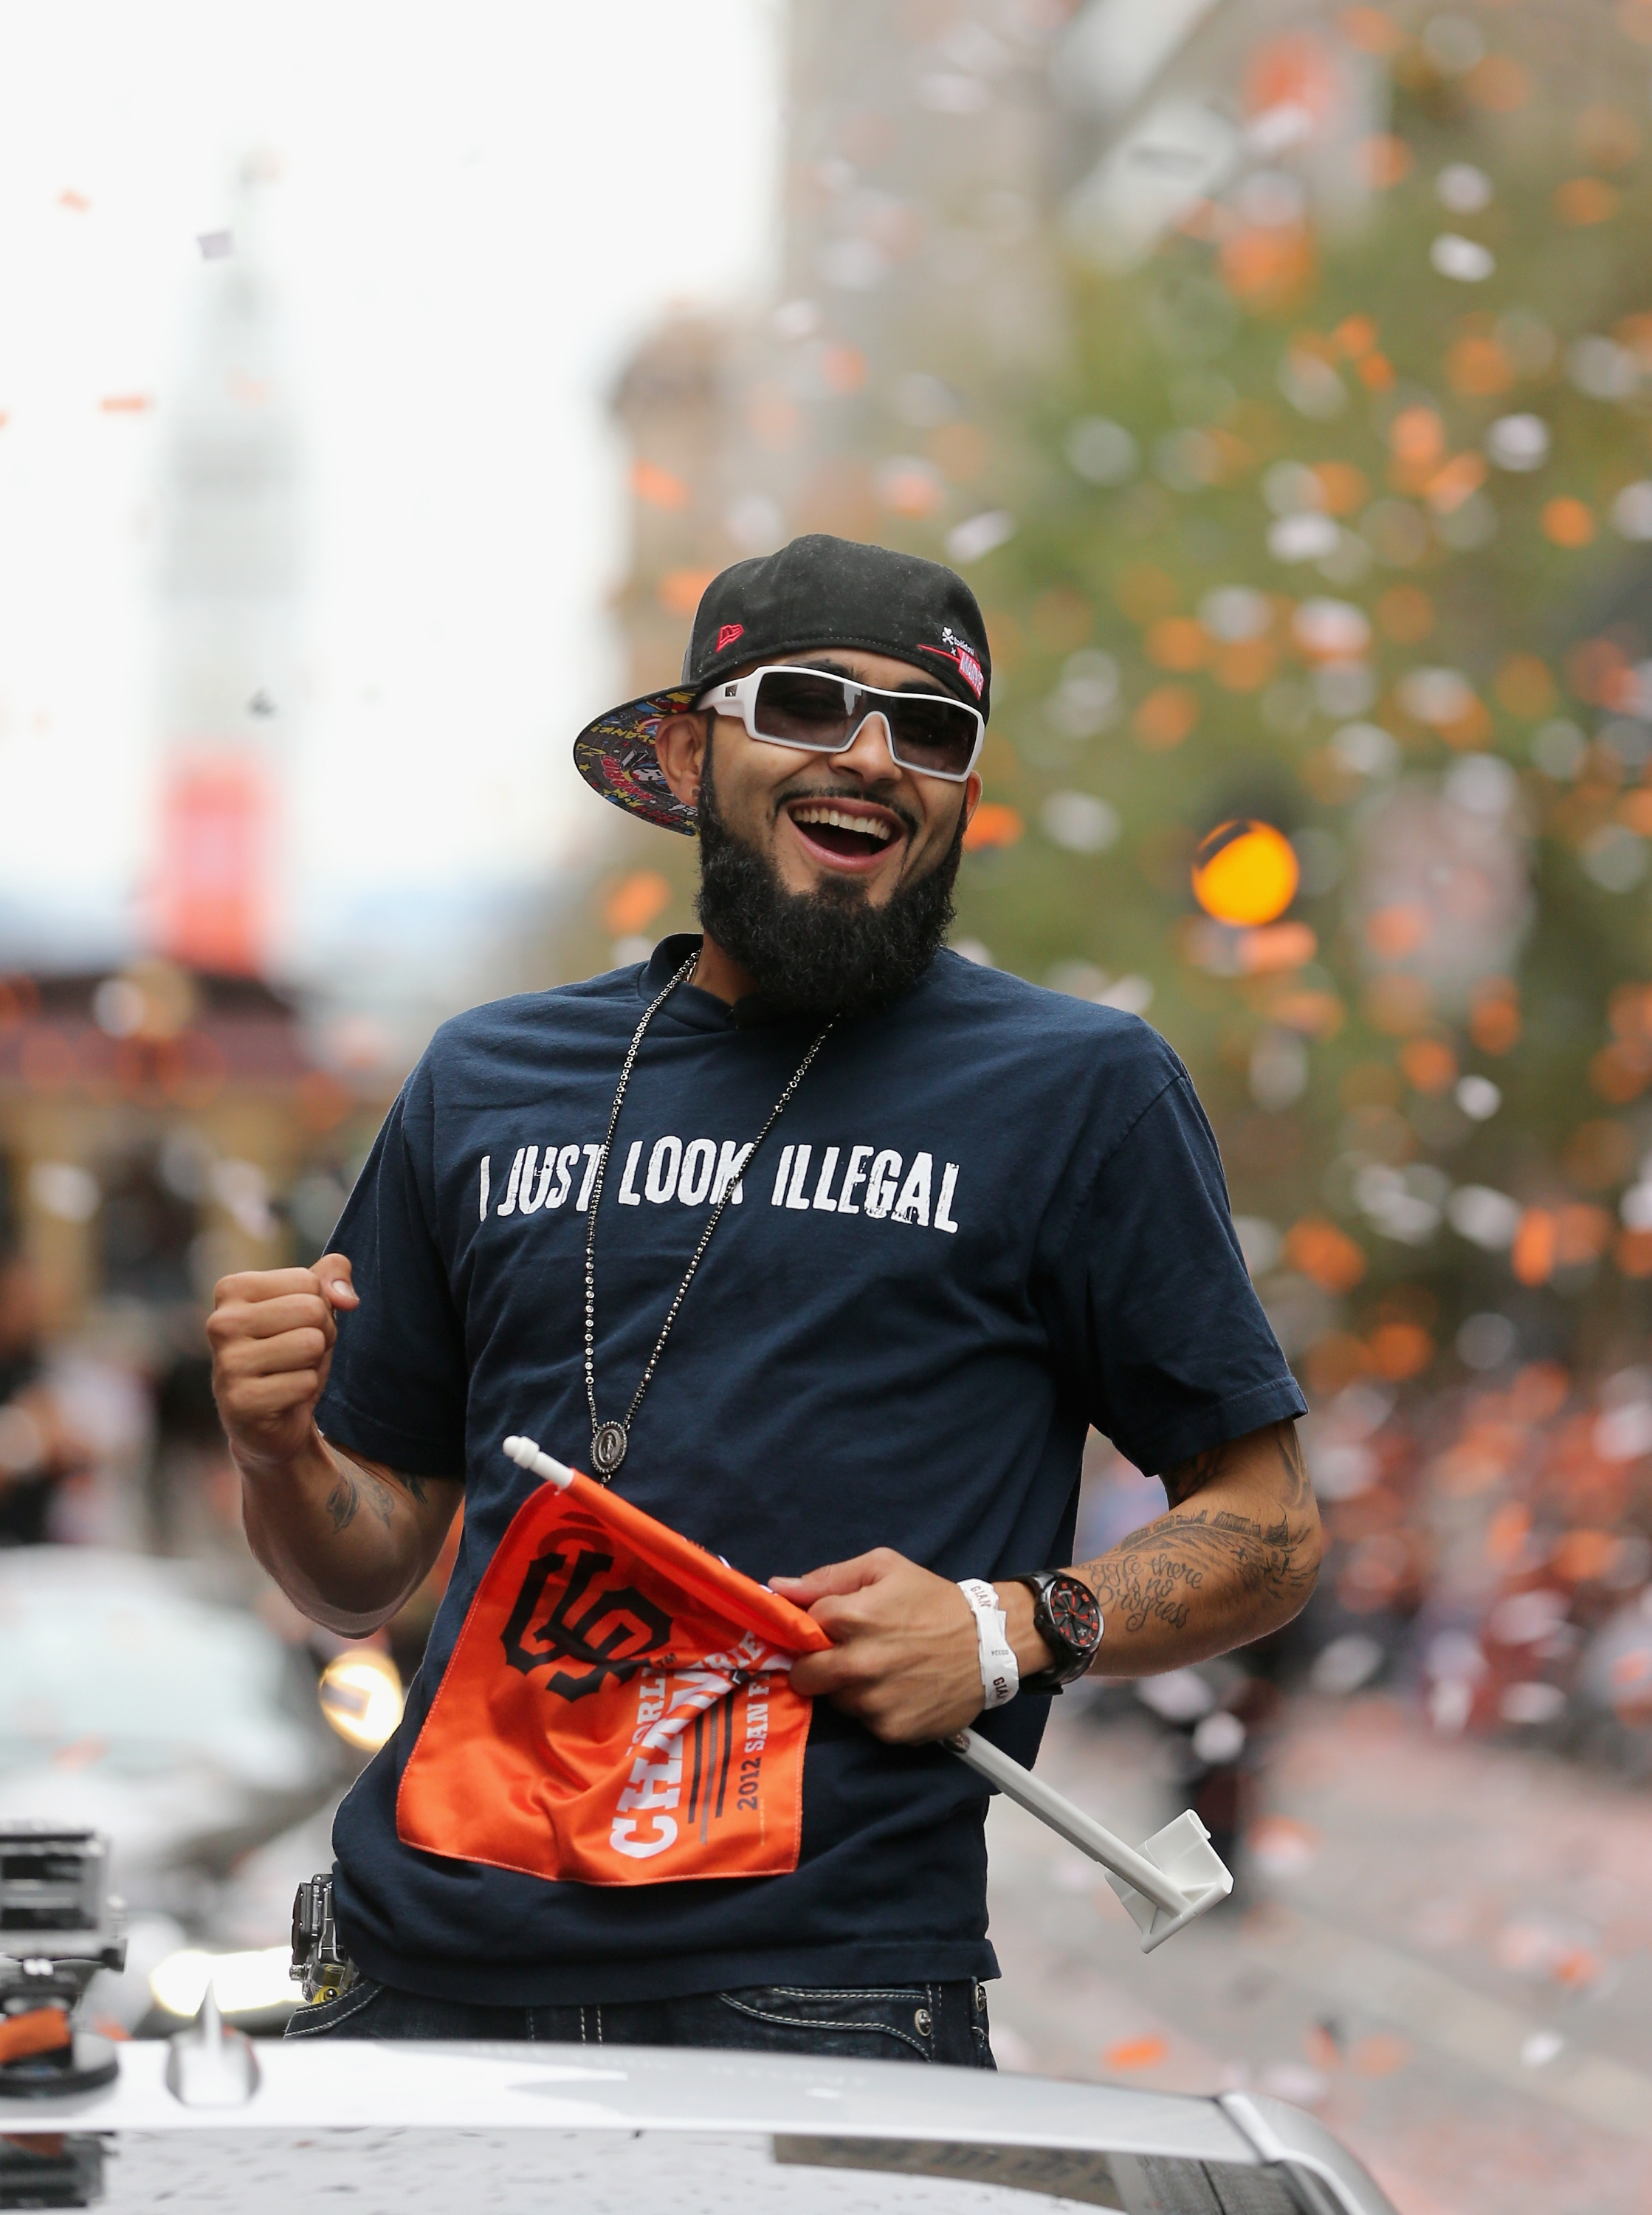 Sergio Romo, Team Mexico's closer, isn't shy about making political statements. (Getty Images)